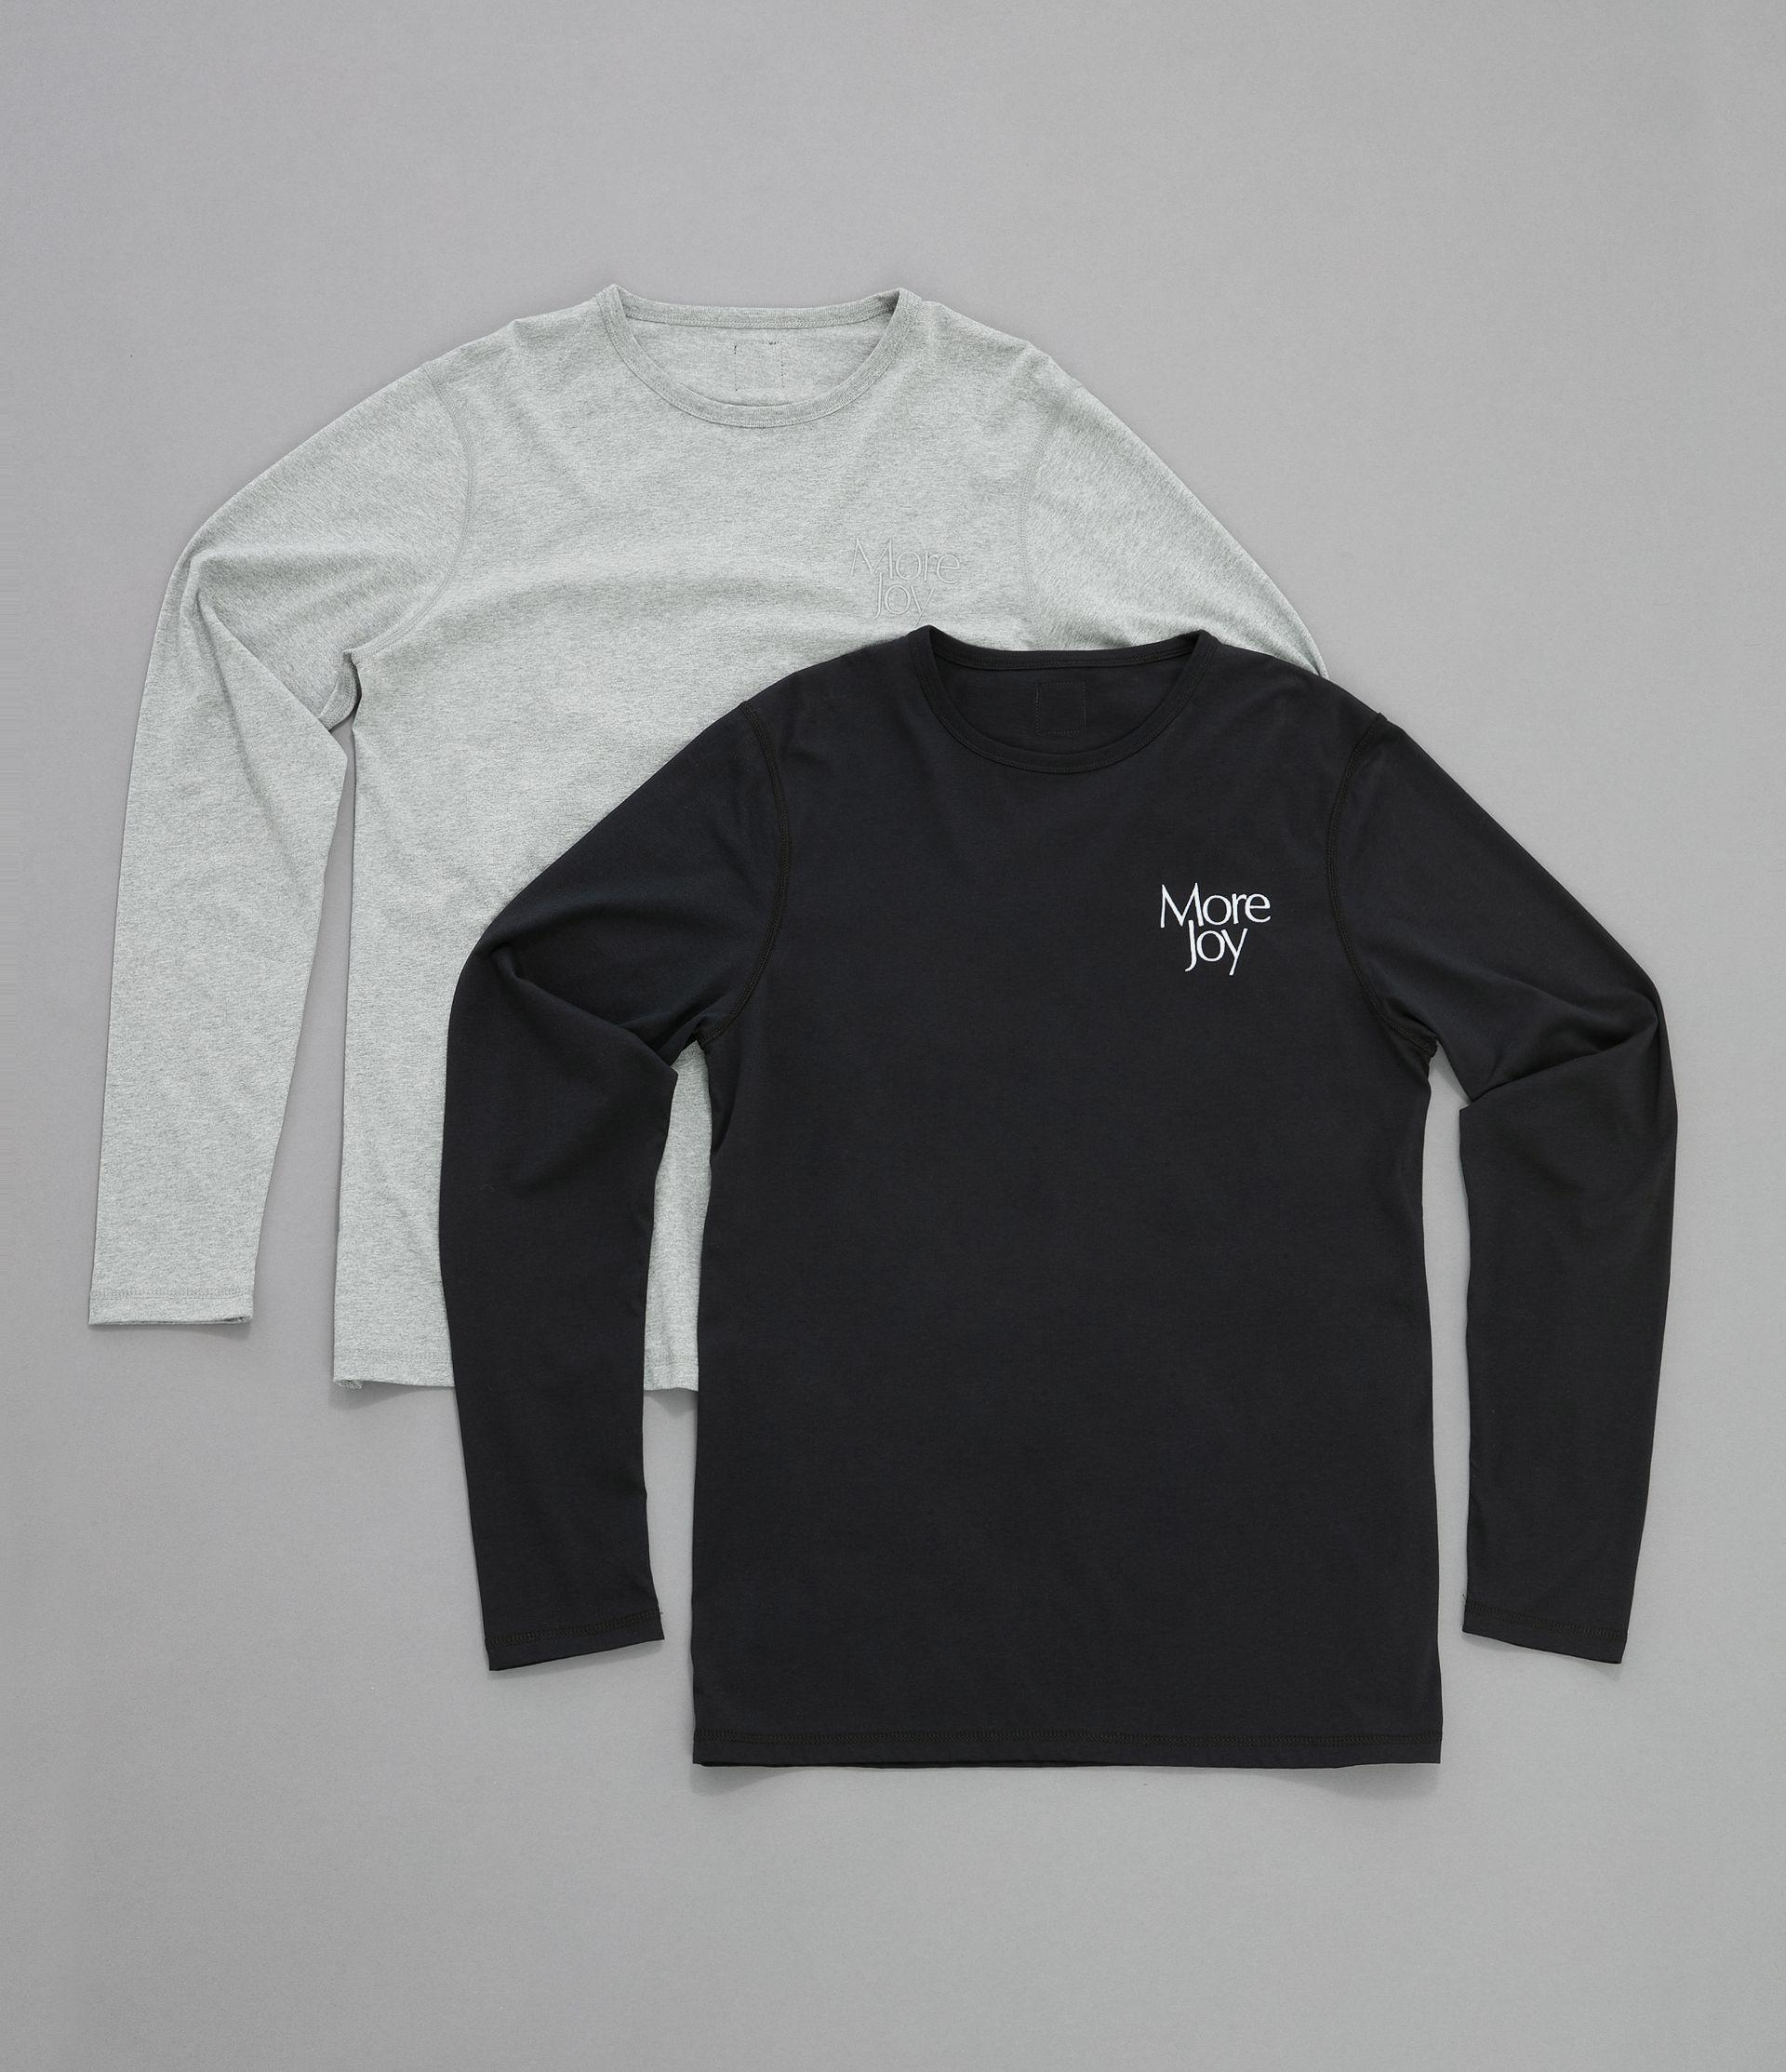 More Joy embroidered long sleeve t-shirt (2 pack)  6